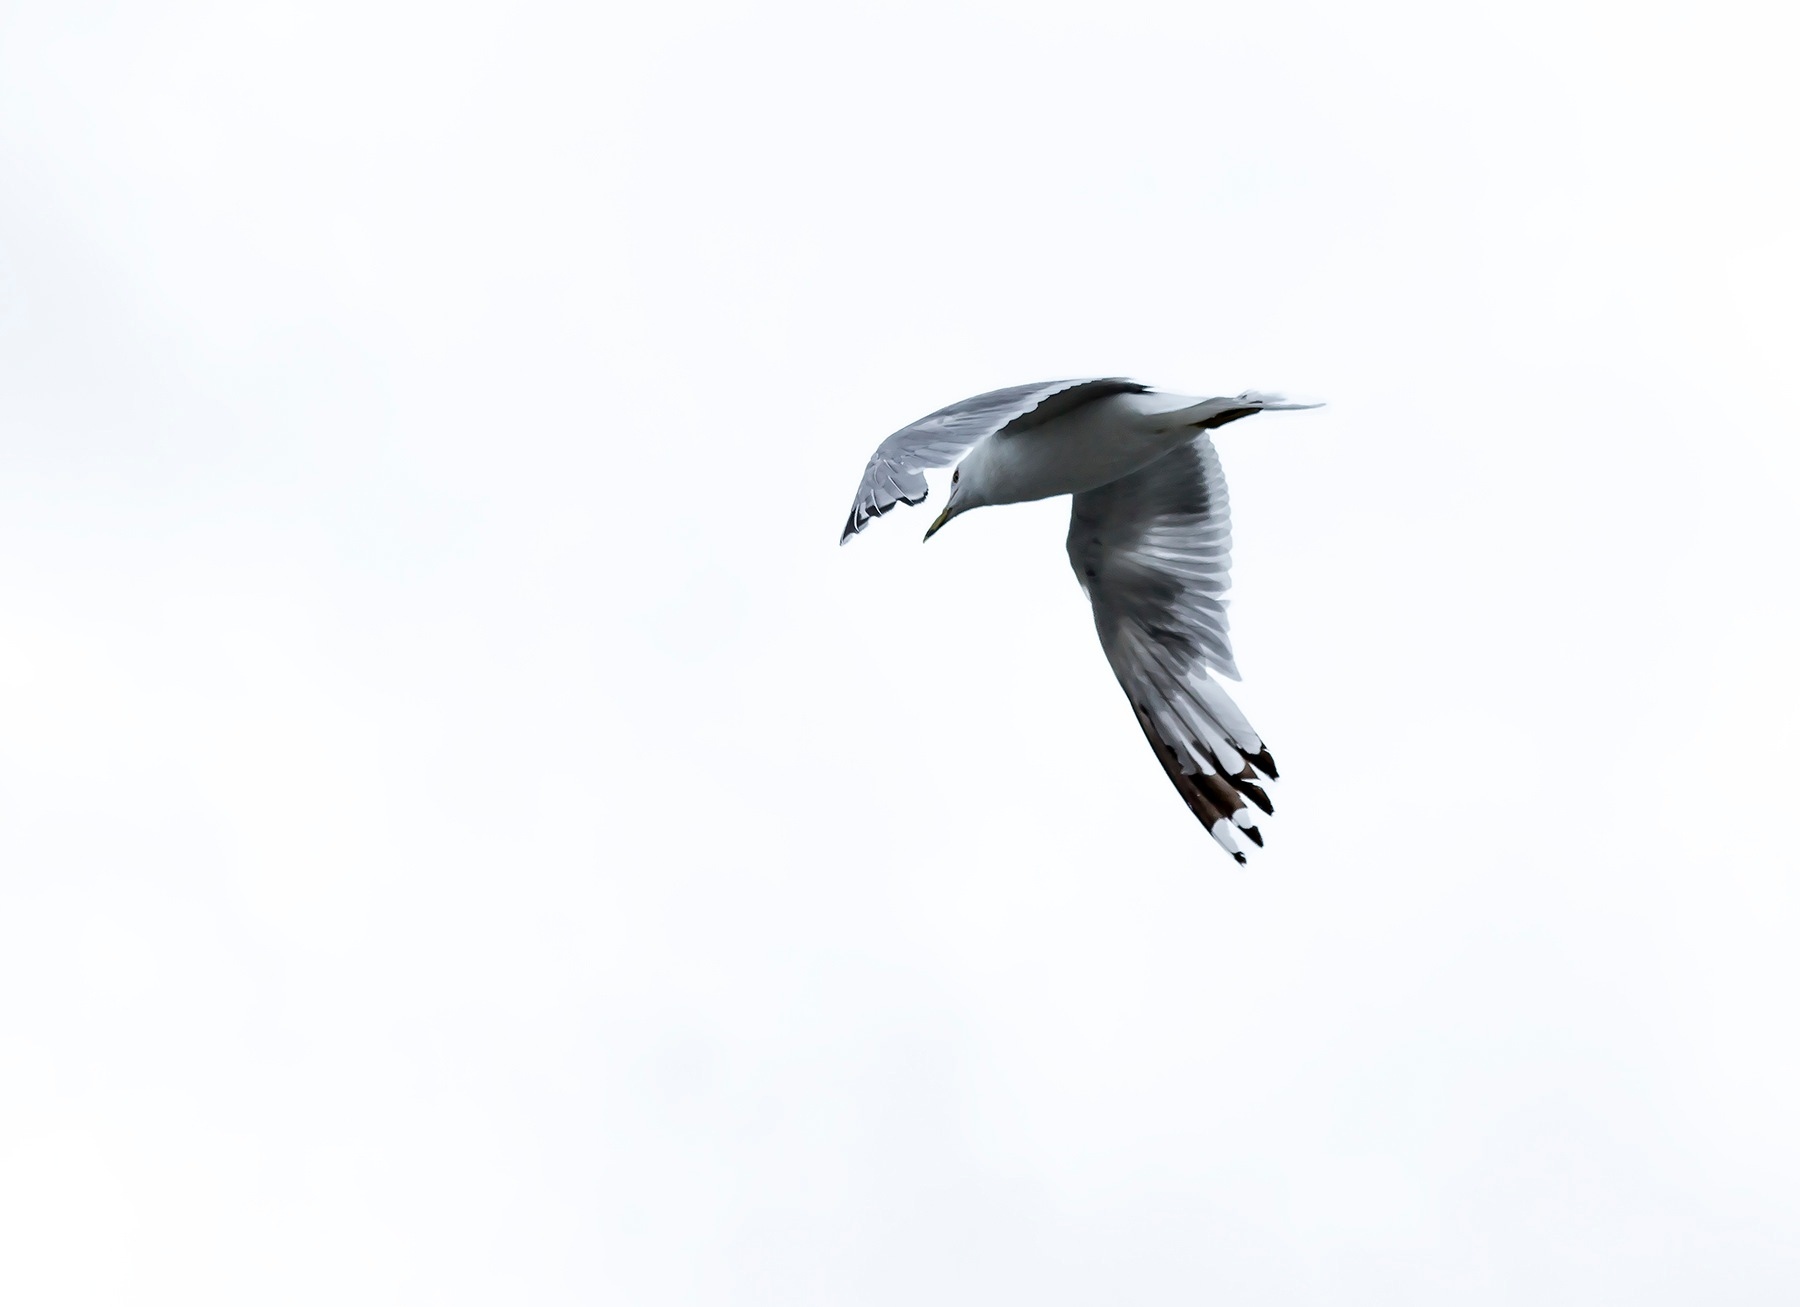 Seagull on White by JMHmy87